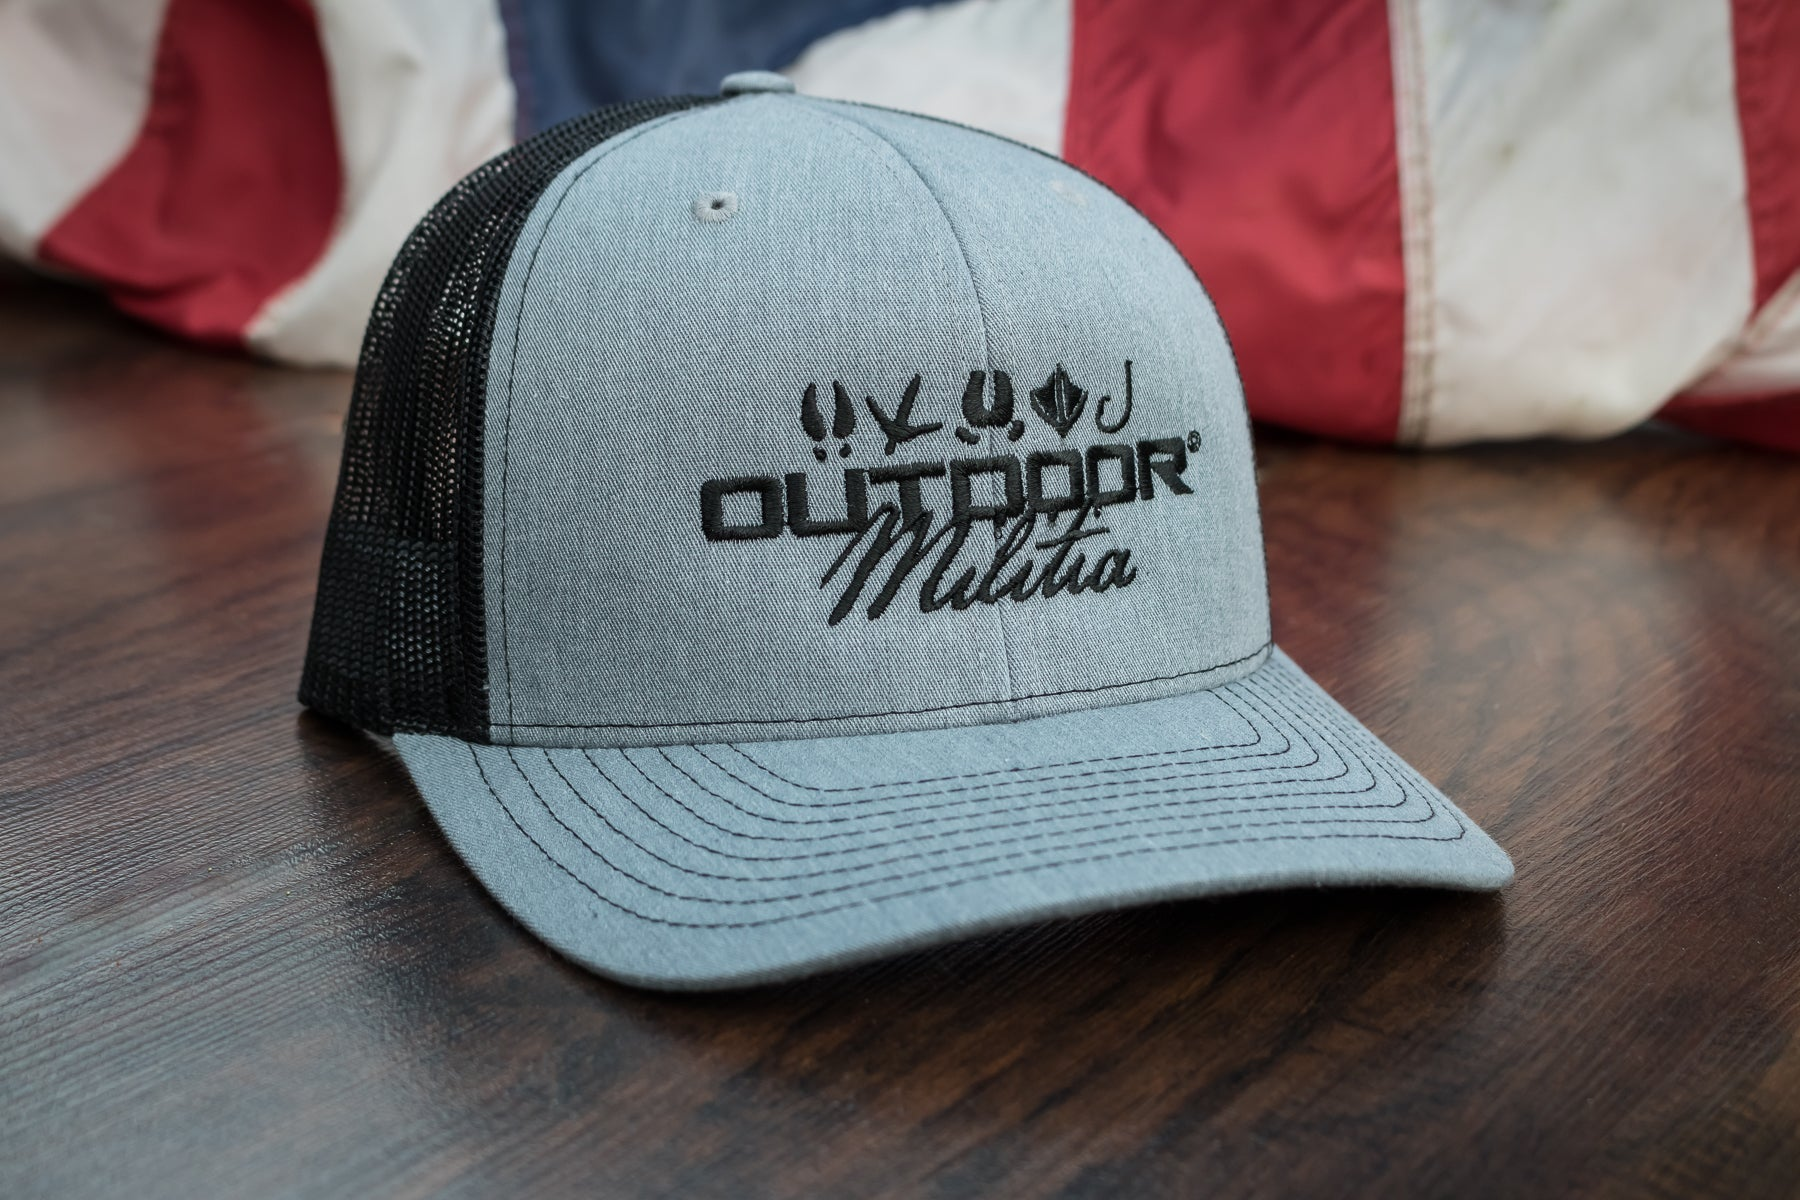 Patriot Back™ | Heather Gray / Black - Outdoor Militia®